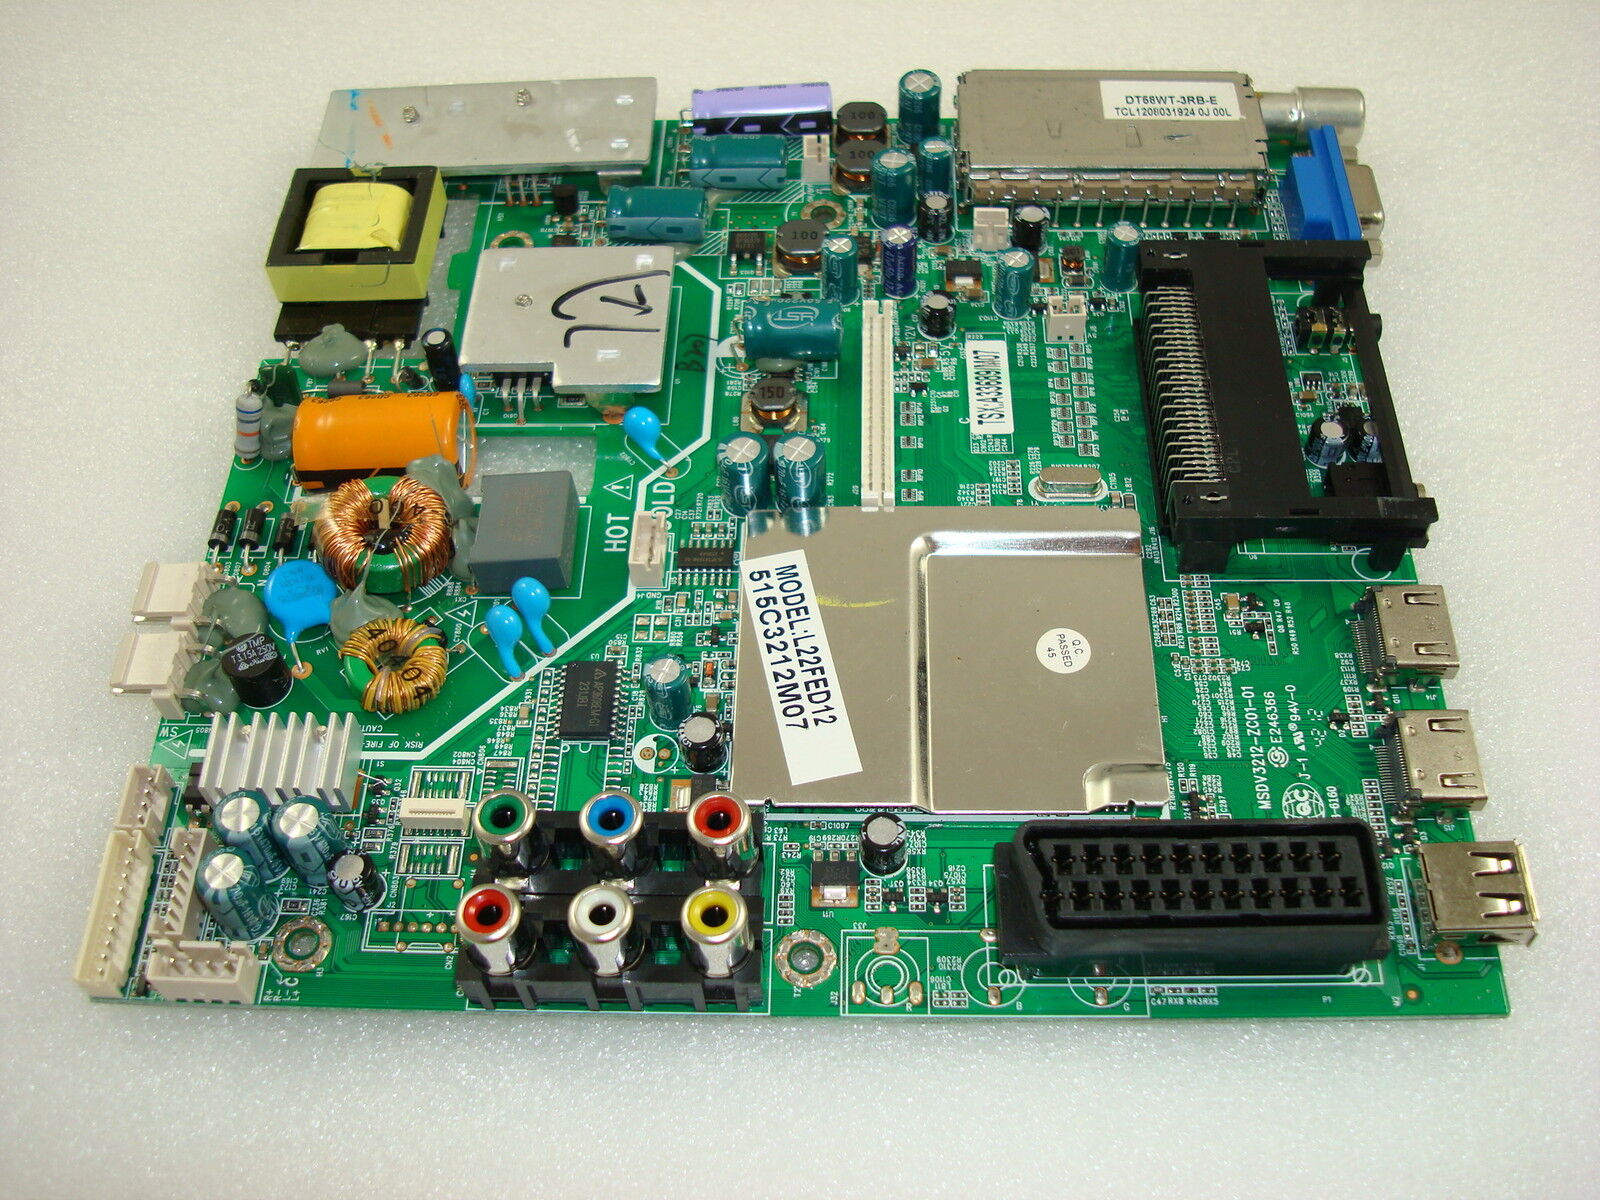 Logik L22fed12 Power Supply Main Av Pcb Msdv3212 Zc01 01 As Well Samsung Tv Circuit Board Schematic Also Philips Norton Secured Powered By Verisign